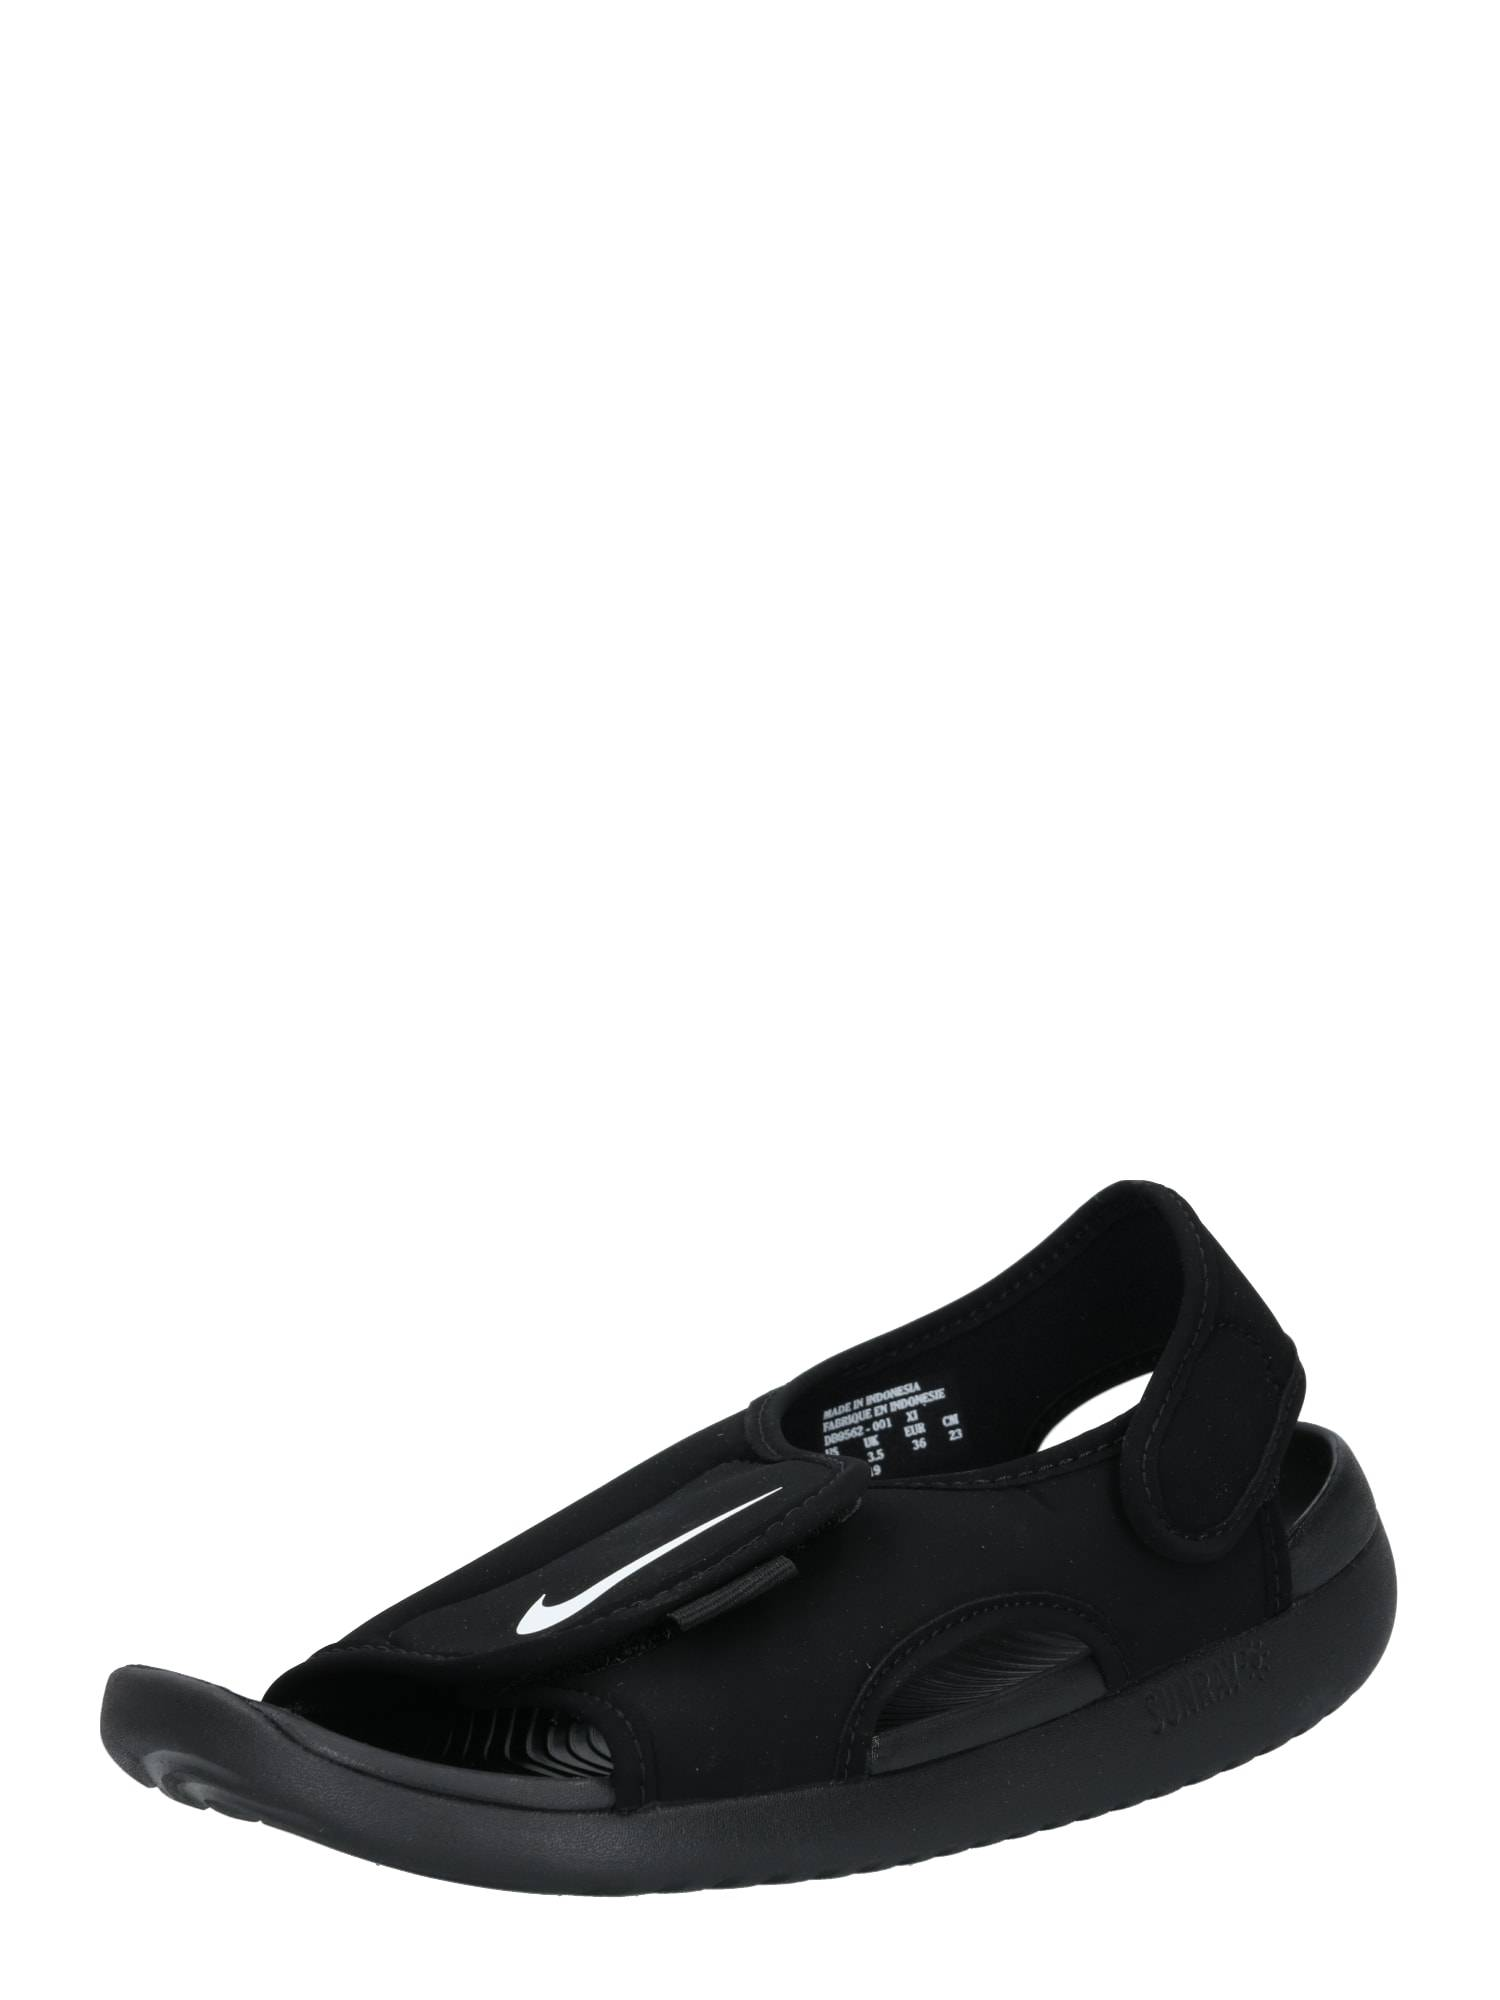 Nike Sportswear Chaussures ouvertes 'SUNRAY ADJUST 5 V2 (GS/PS)'  - Noir - Taille: 4Y - boy